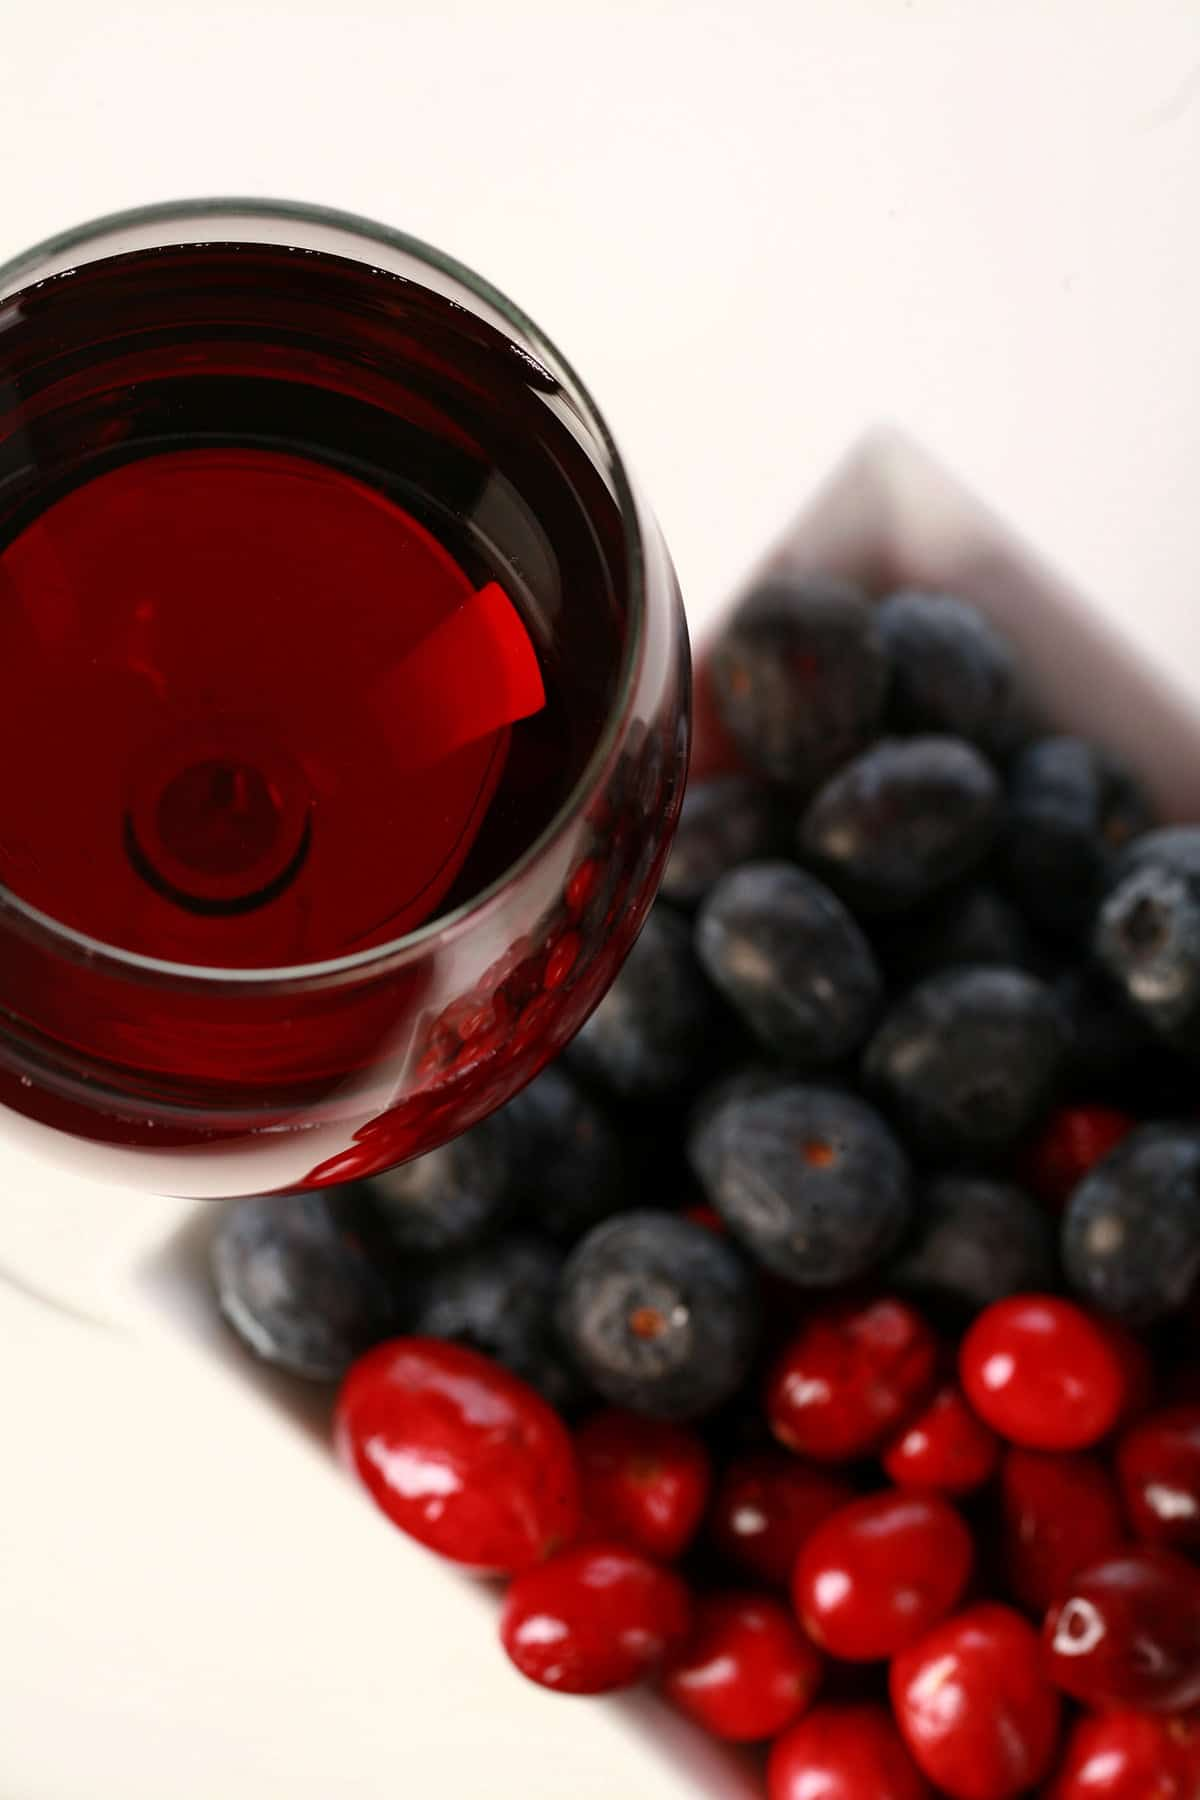 A glass of red wine - made from this faux lingonberry wine recipe - is pictured next to a small bowl of cranberries and blueberries